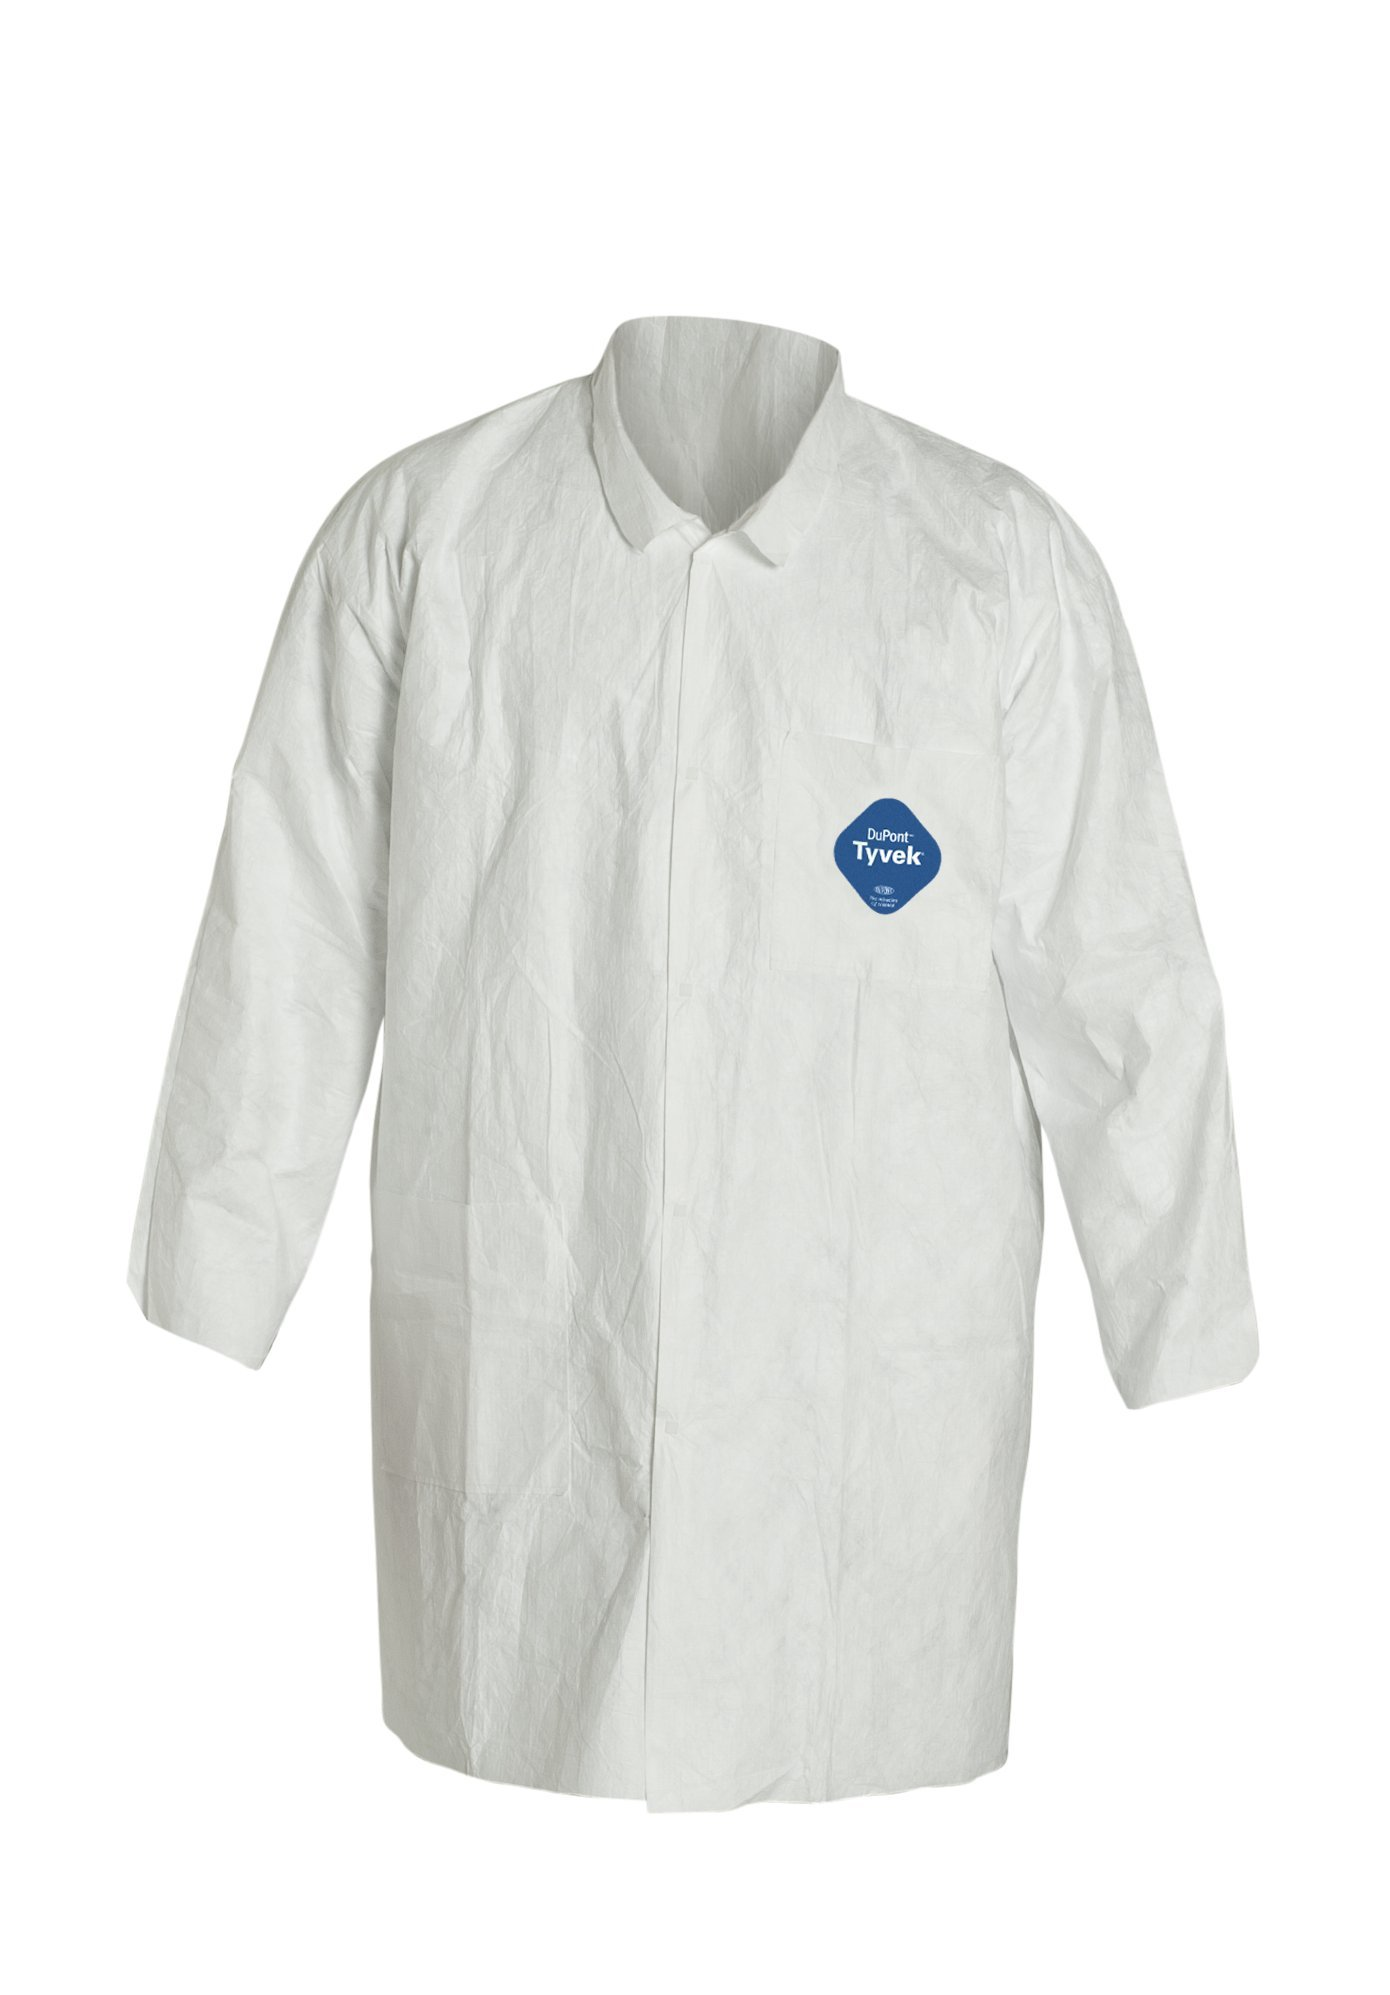 DuPont Tyvek 400 TY212S NAFTA Sourced Disposable Lab Coat with Open Cuff, White, 2X-Large (Pack of 30)